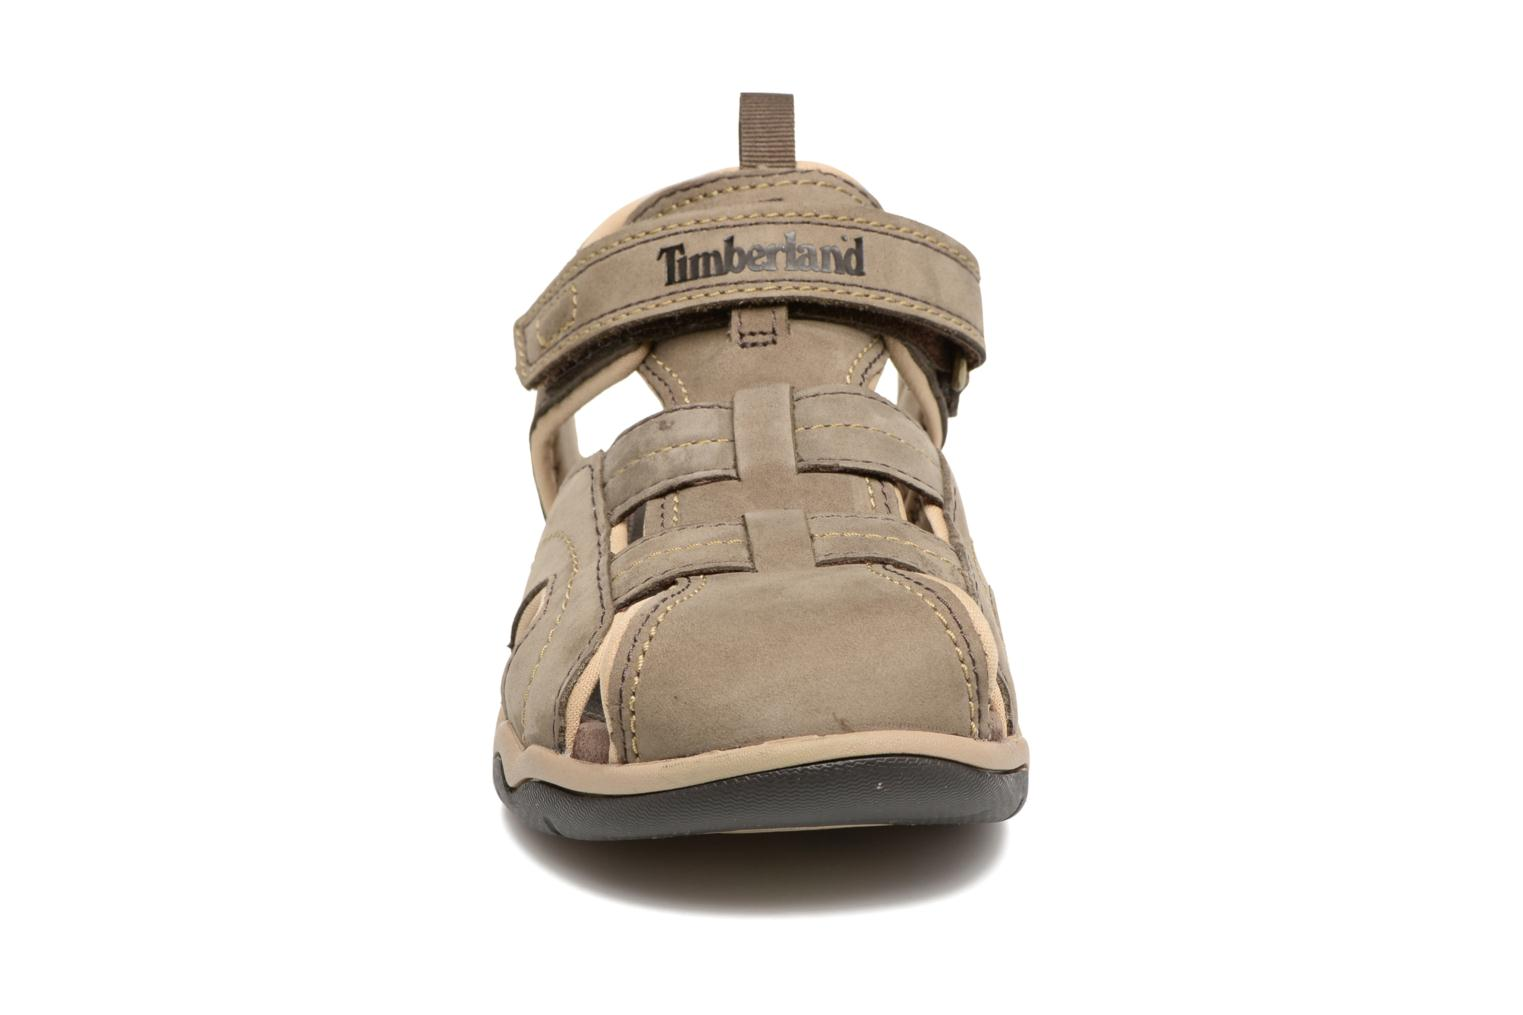 Sandales et nu-pieds Timberland Oak Bluffs Leather Fisher Gris vue portées chaussures